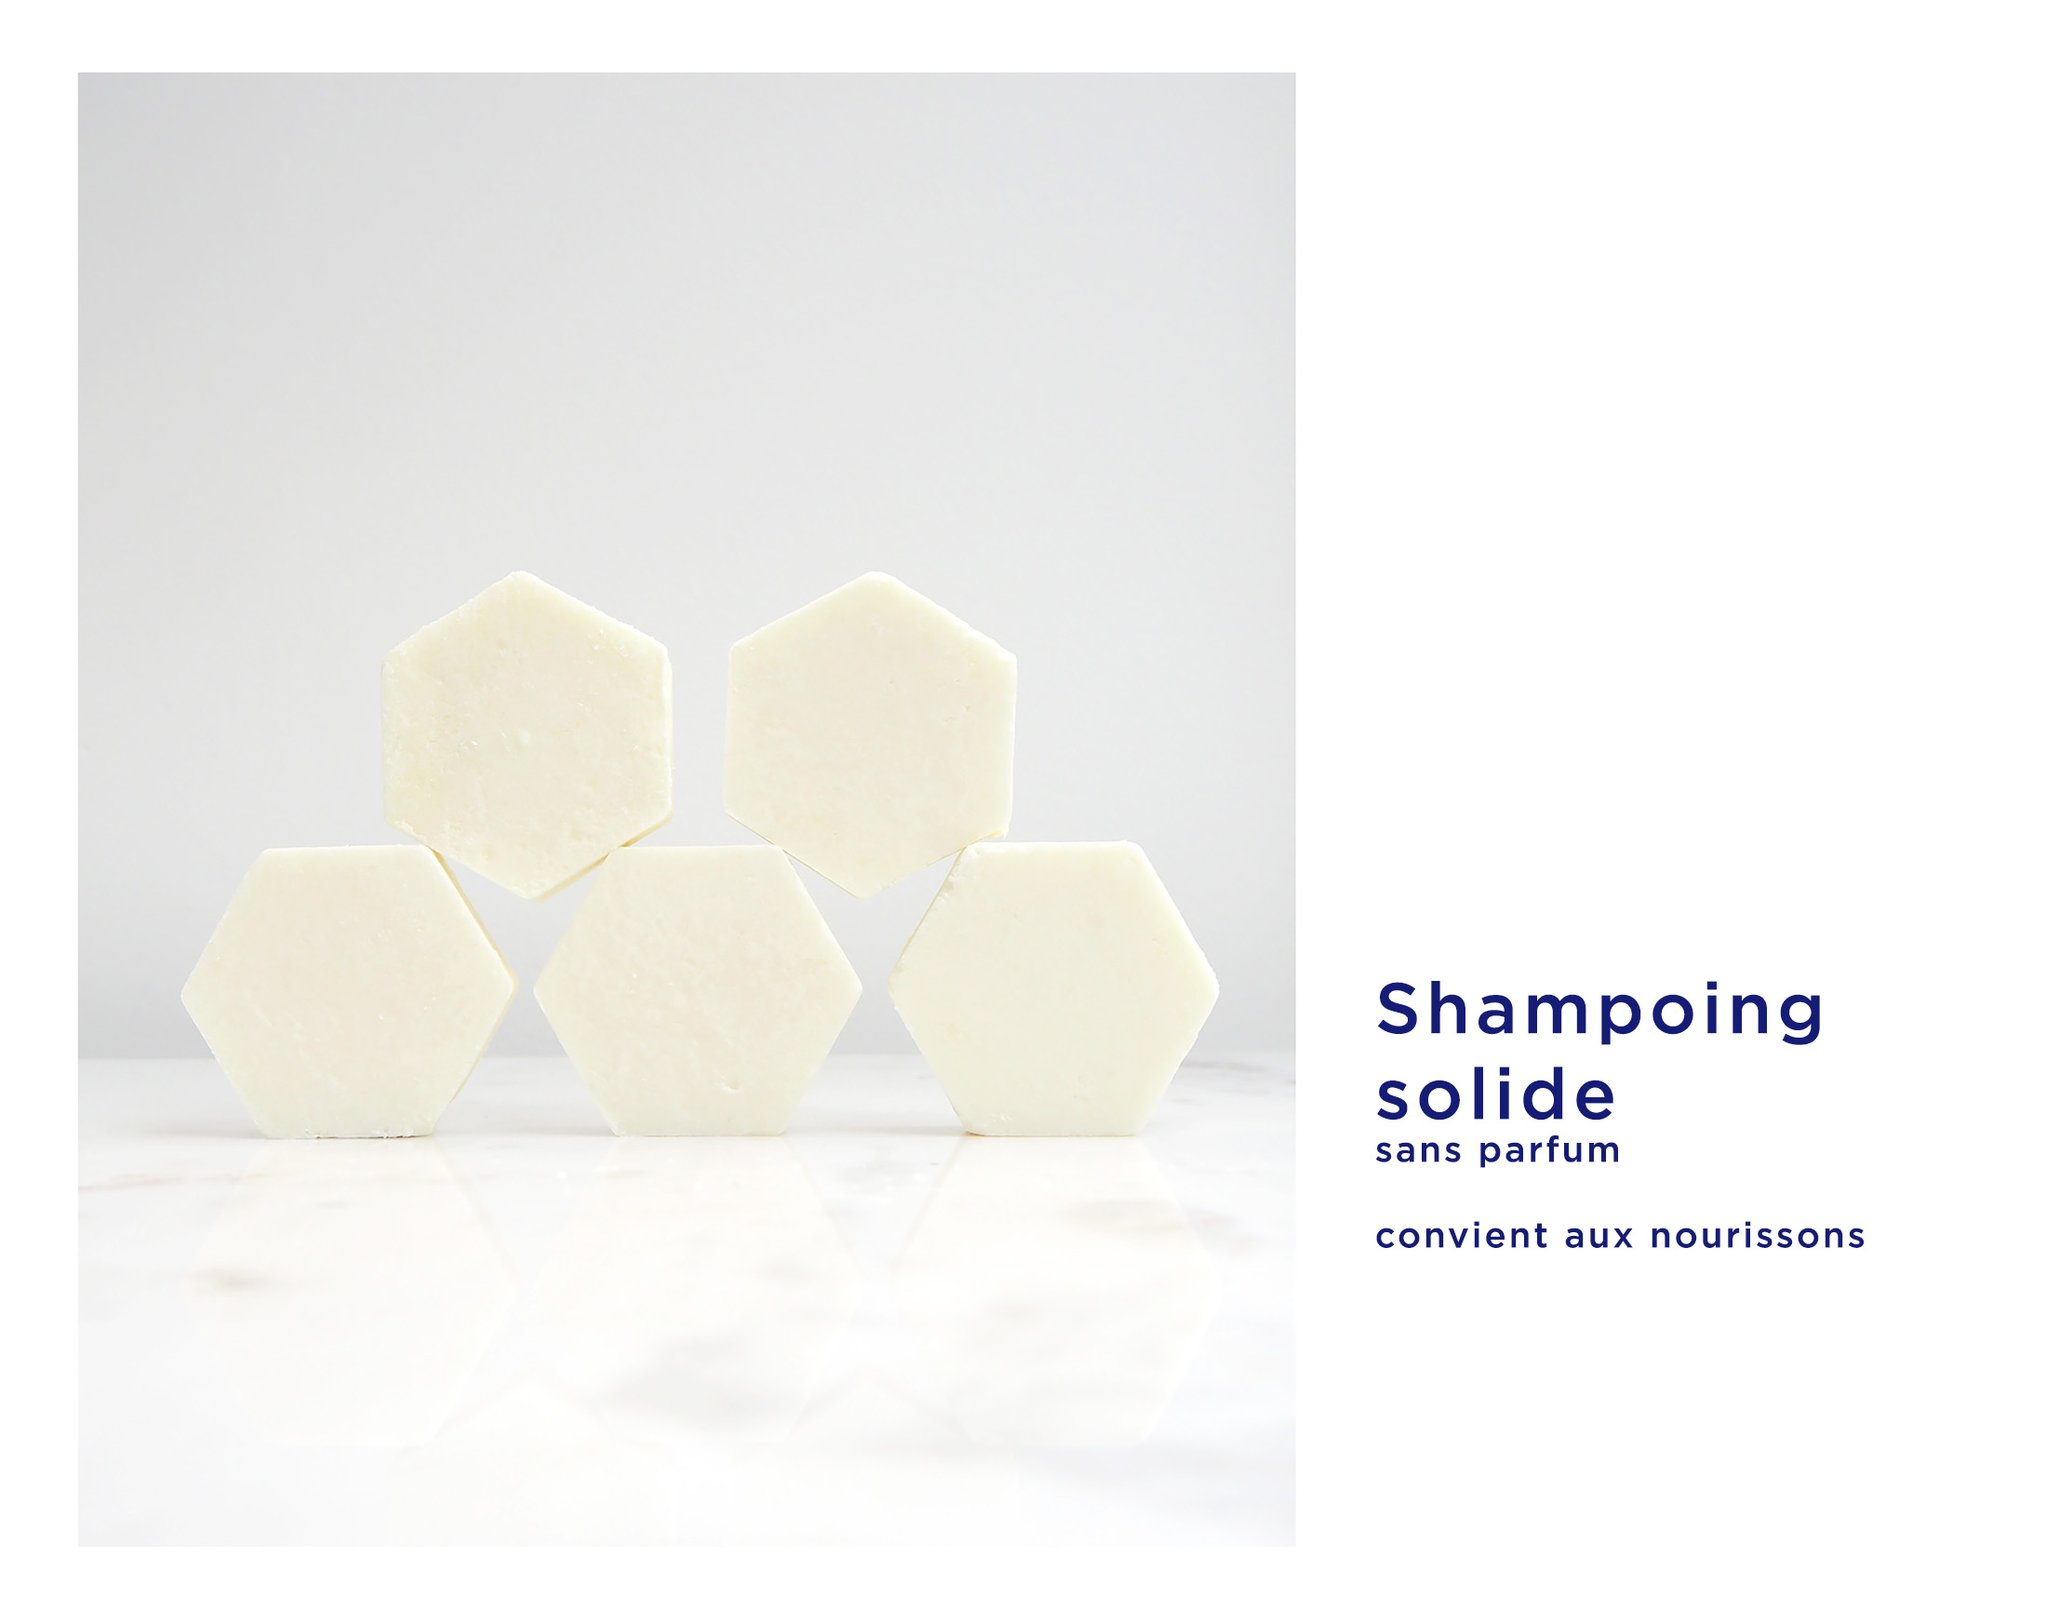 Shampoing solide blanc